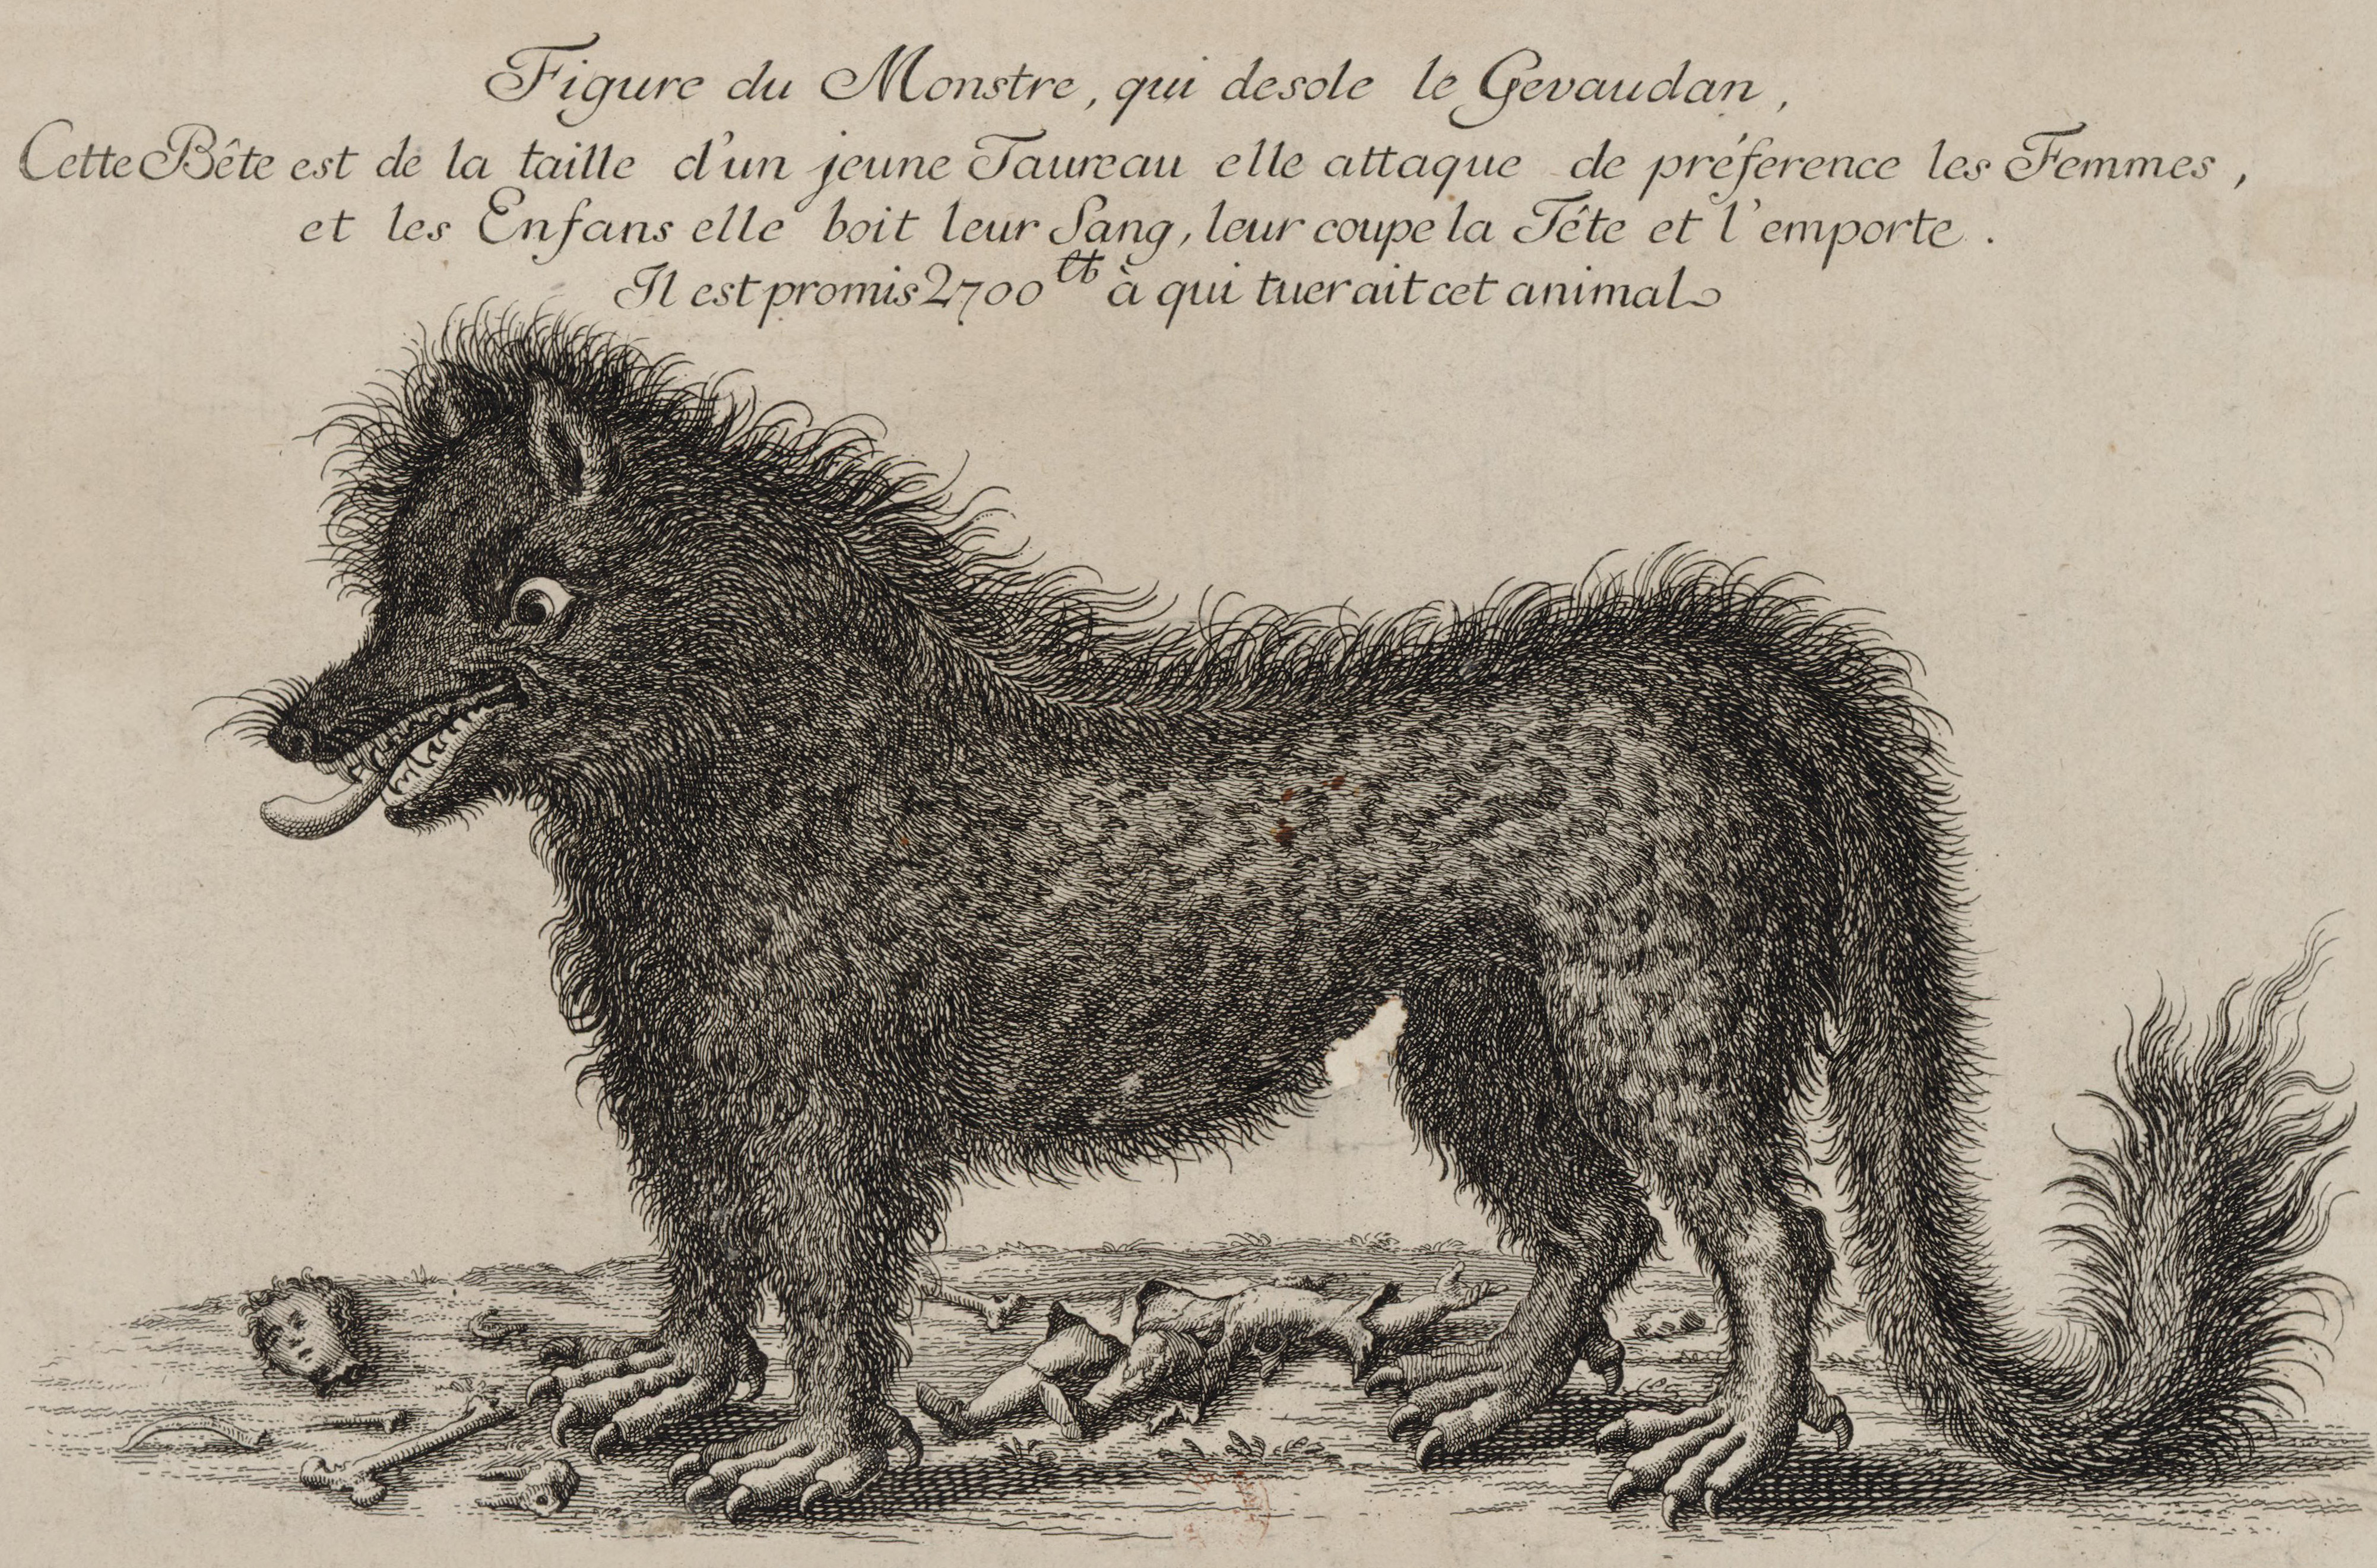 Drawing of what people thought the beast of Gévaudan looked like